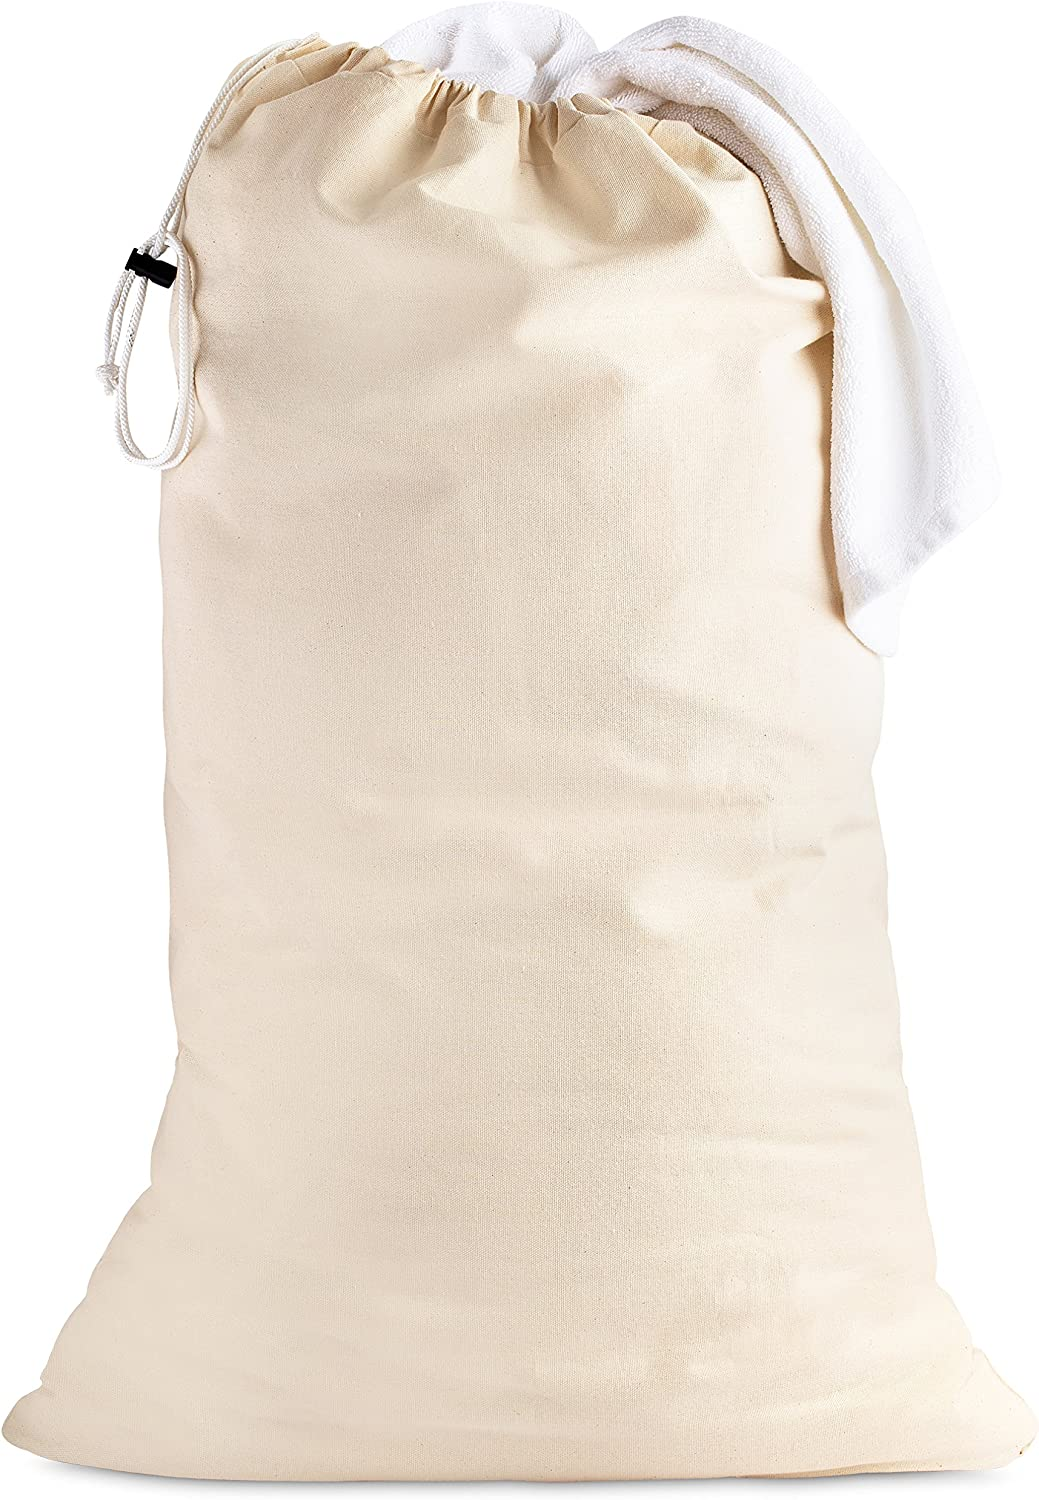 "Cotton Laundry Bag - 24"" x 36"" - Sturdy, Breathable, 100% Cotton, Locking Drawstring Closure for Easy Carrying, Perfect Laundry Bag for College Students Living in dorms, and Sorting Laundry at Home."